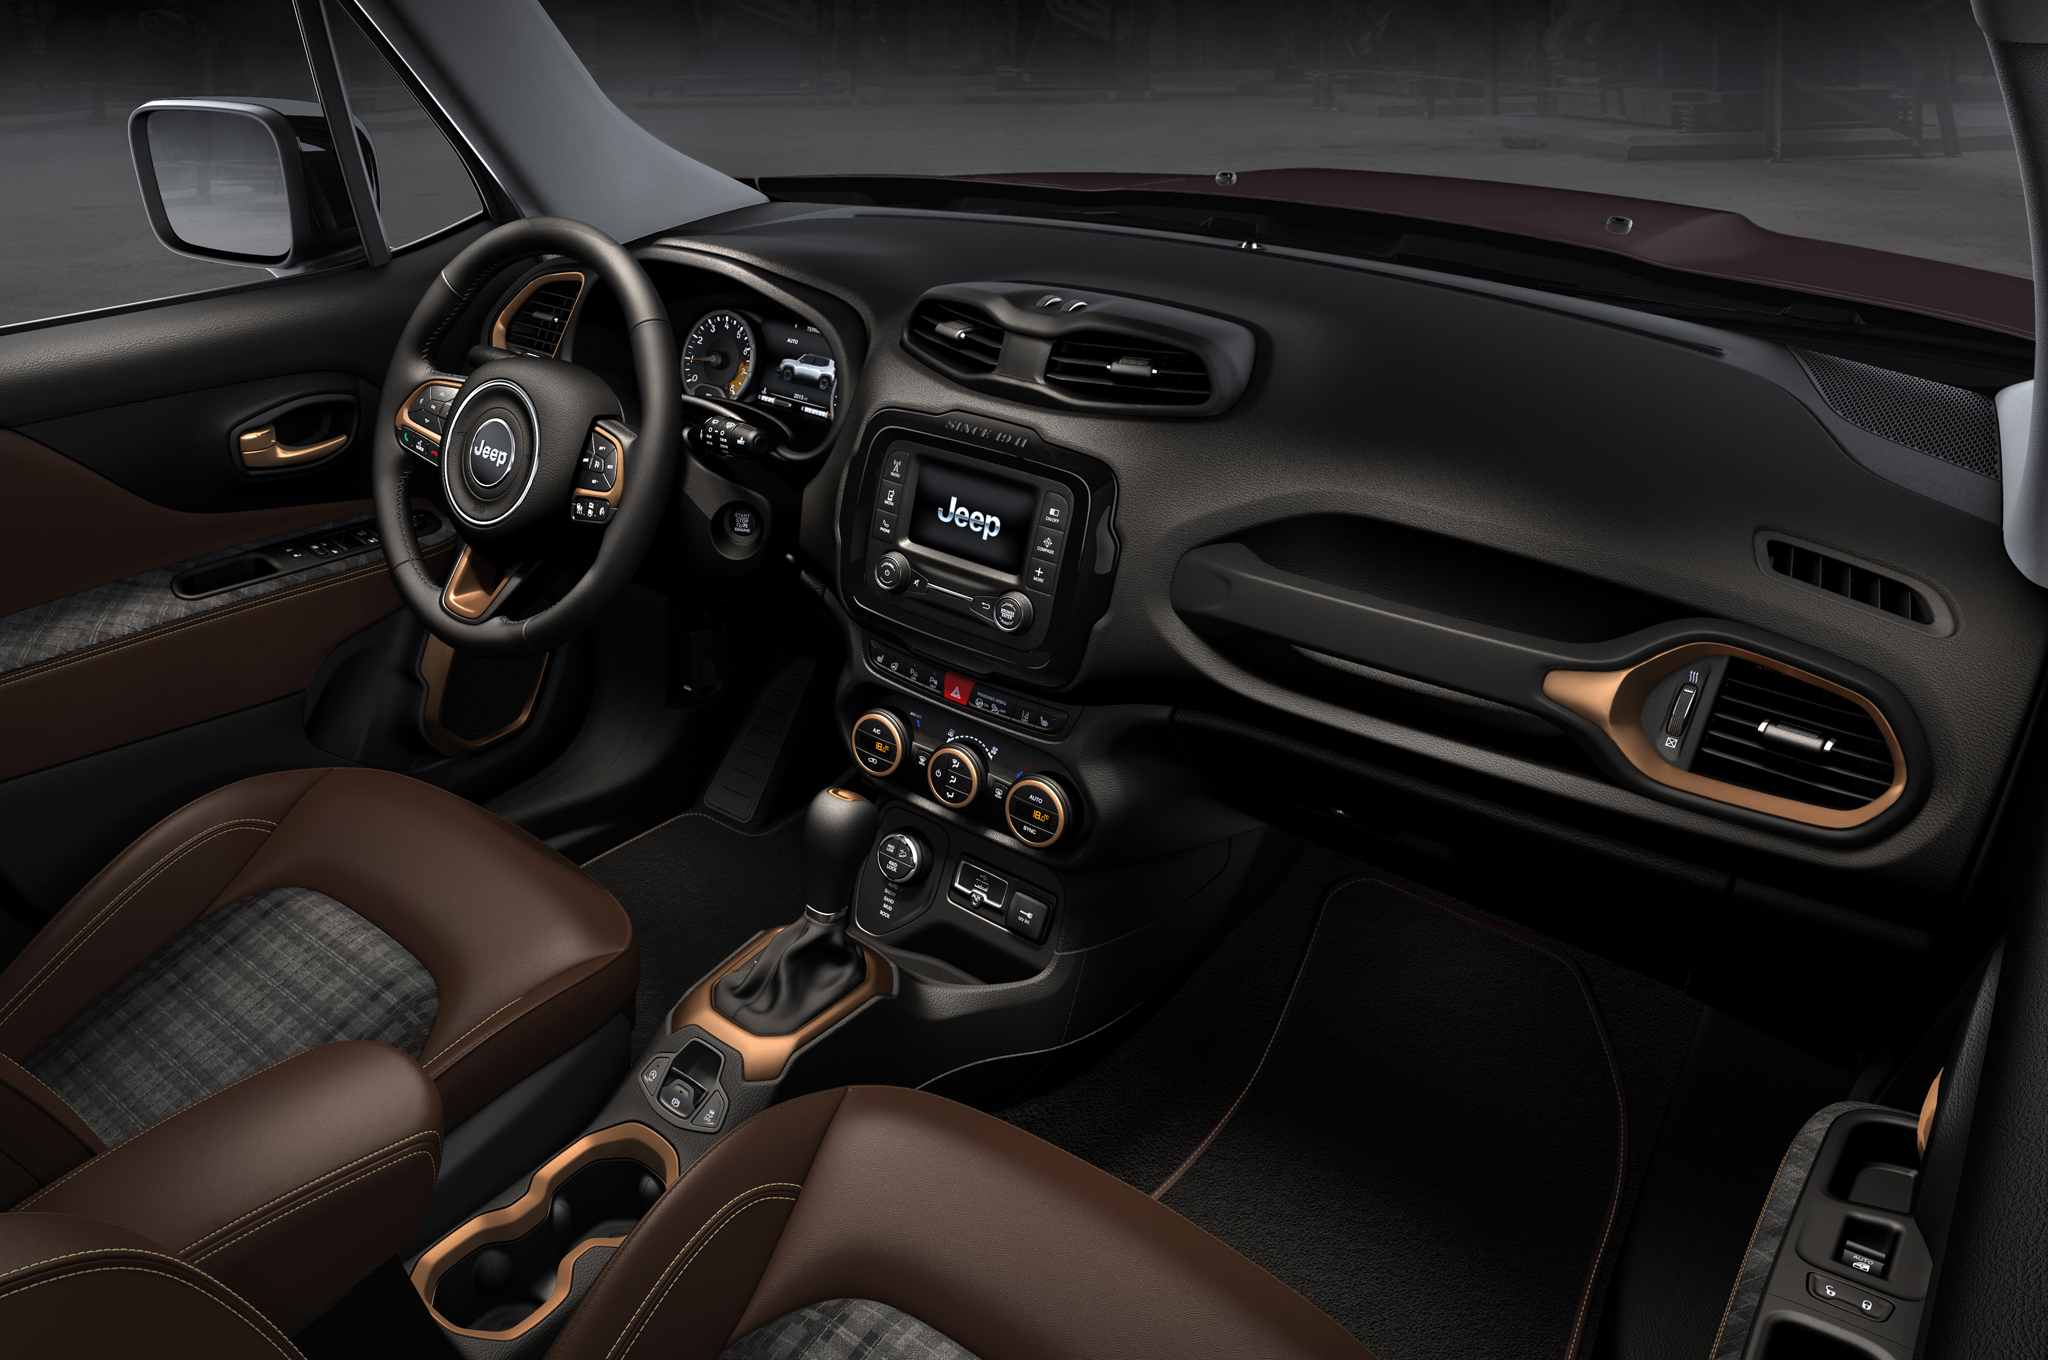 2017 Jeep Wrangler Unlimited Interior Pictures Www New Redesign1 Topline Magazinetopline